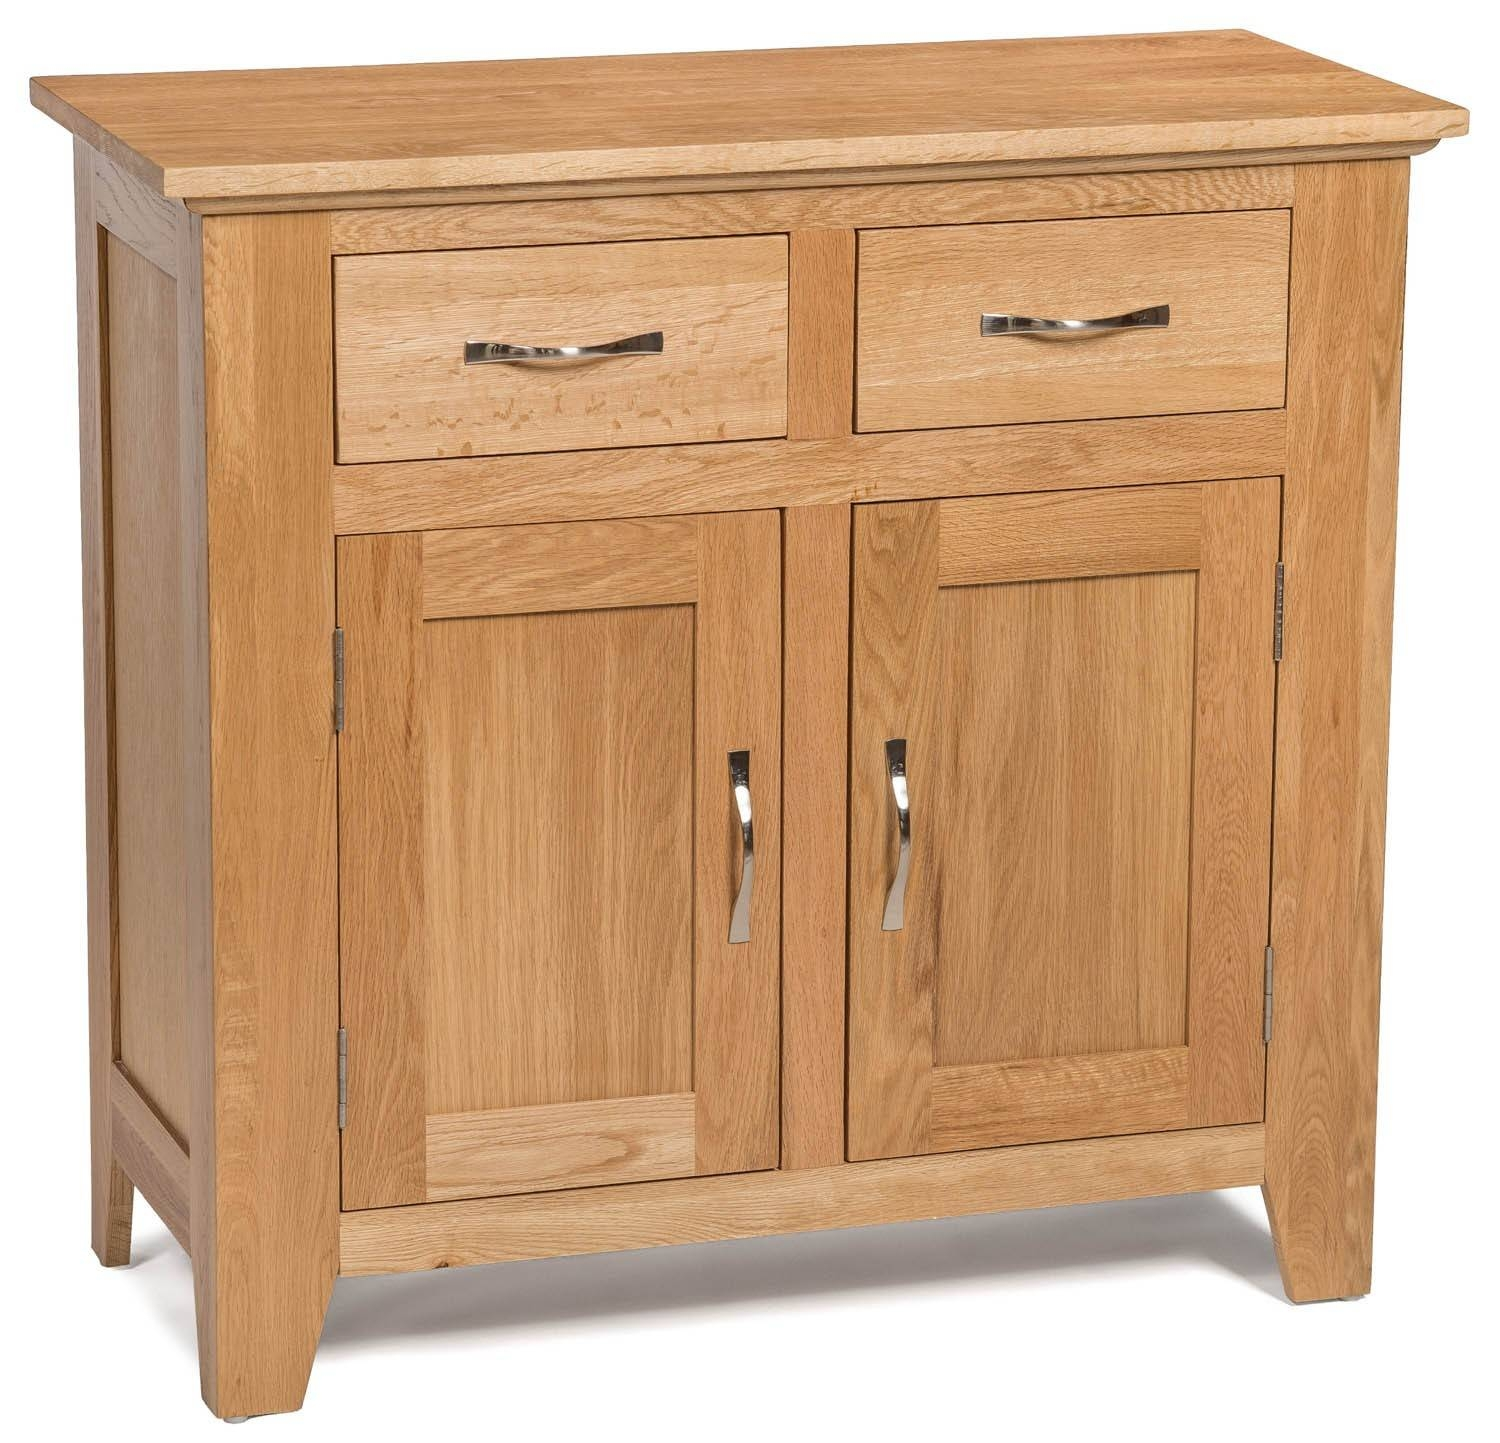 Inspiration about Camberley Oak Small 2 Door 2 Drawer Sideboard | Hallowood For Small Sideboards With Drawers (#2 of 15)